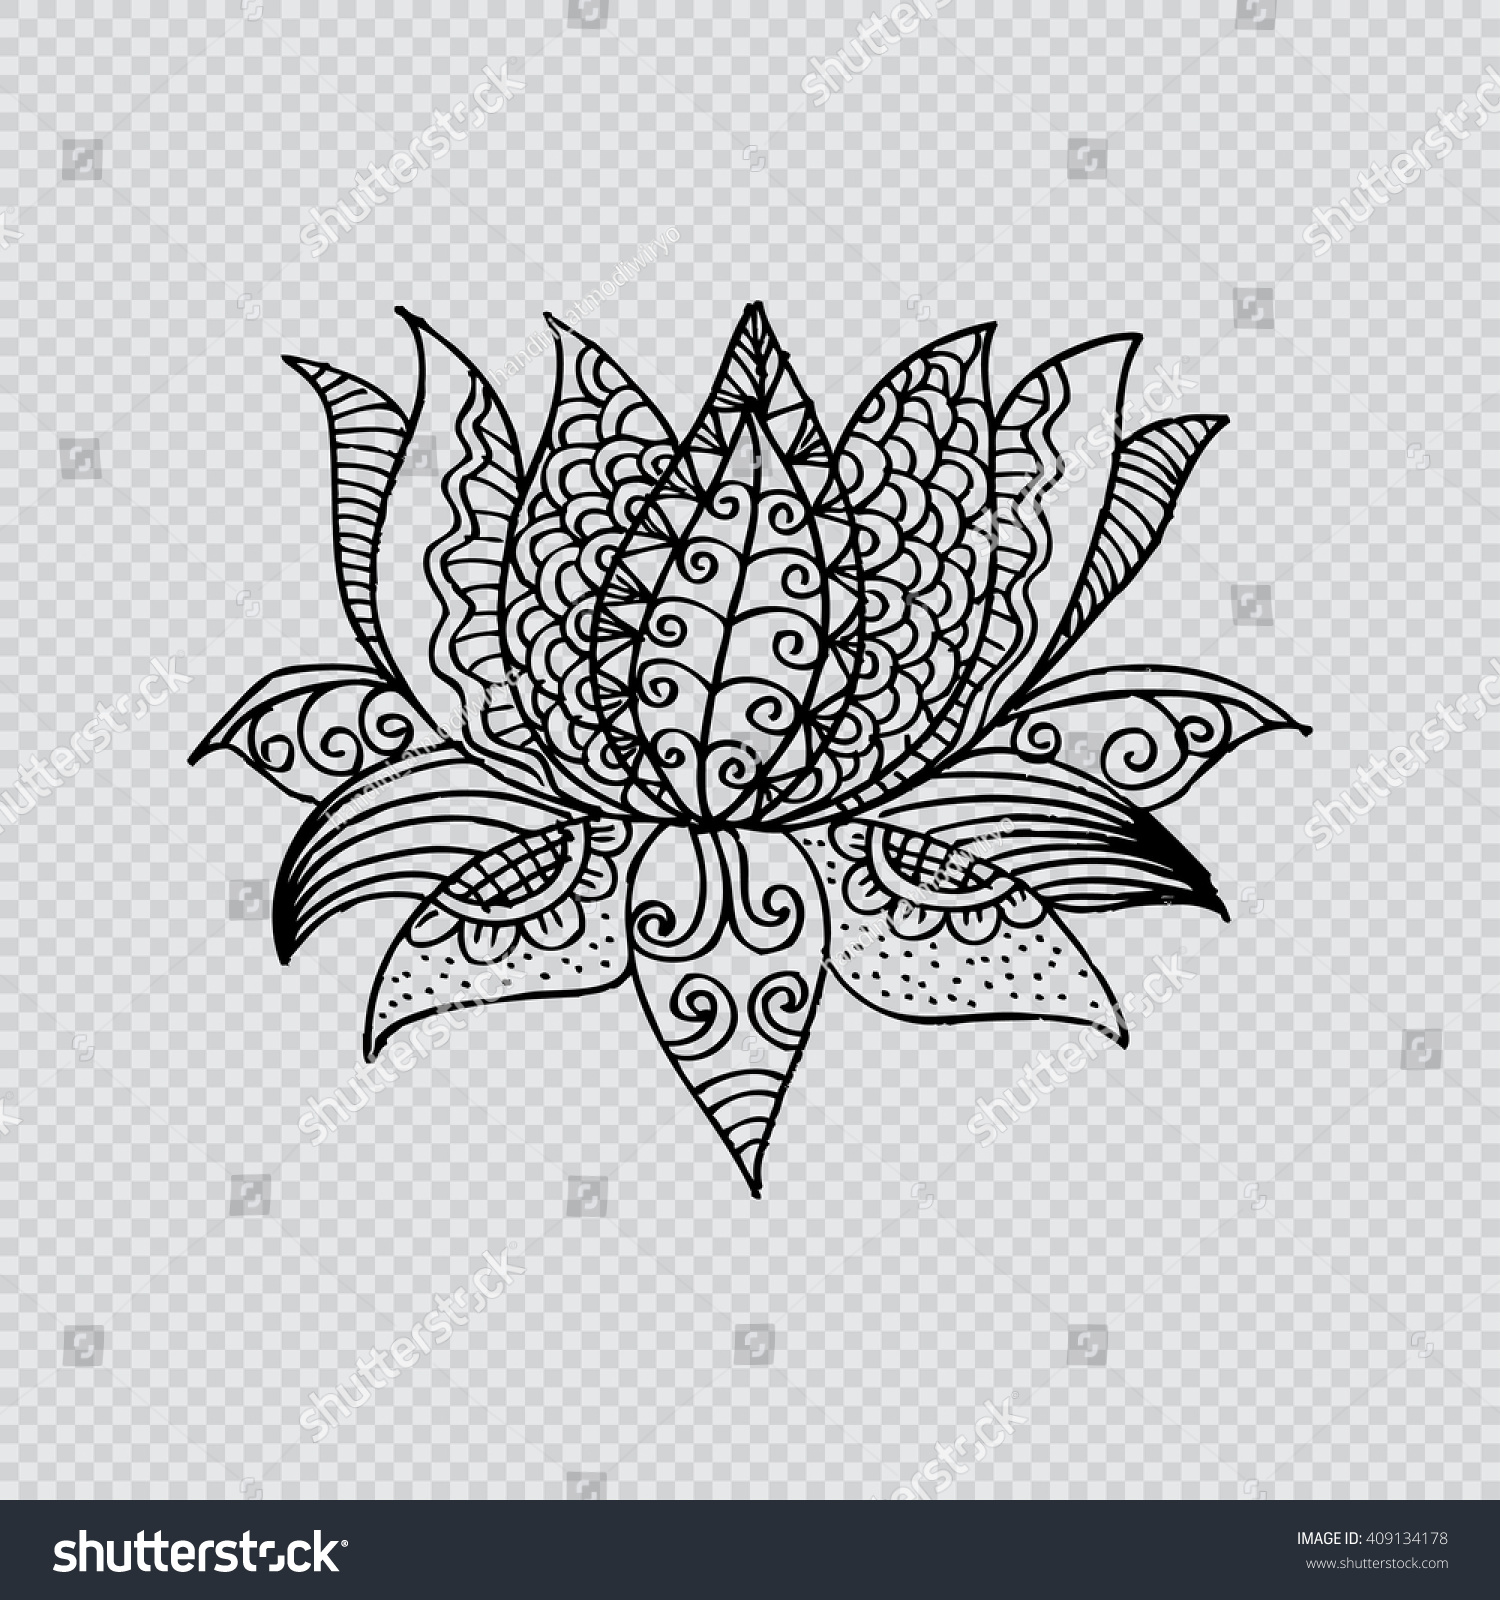 Royalty Free Lotus Flower Silhouette Water Lily 409134178 Stock